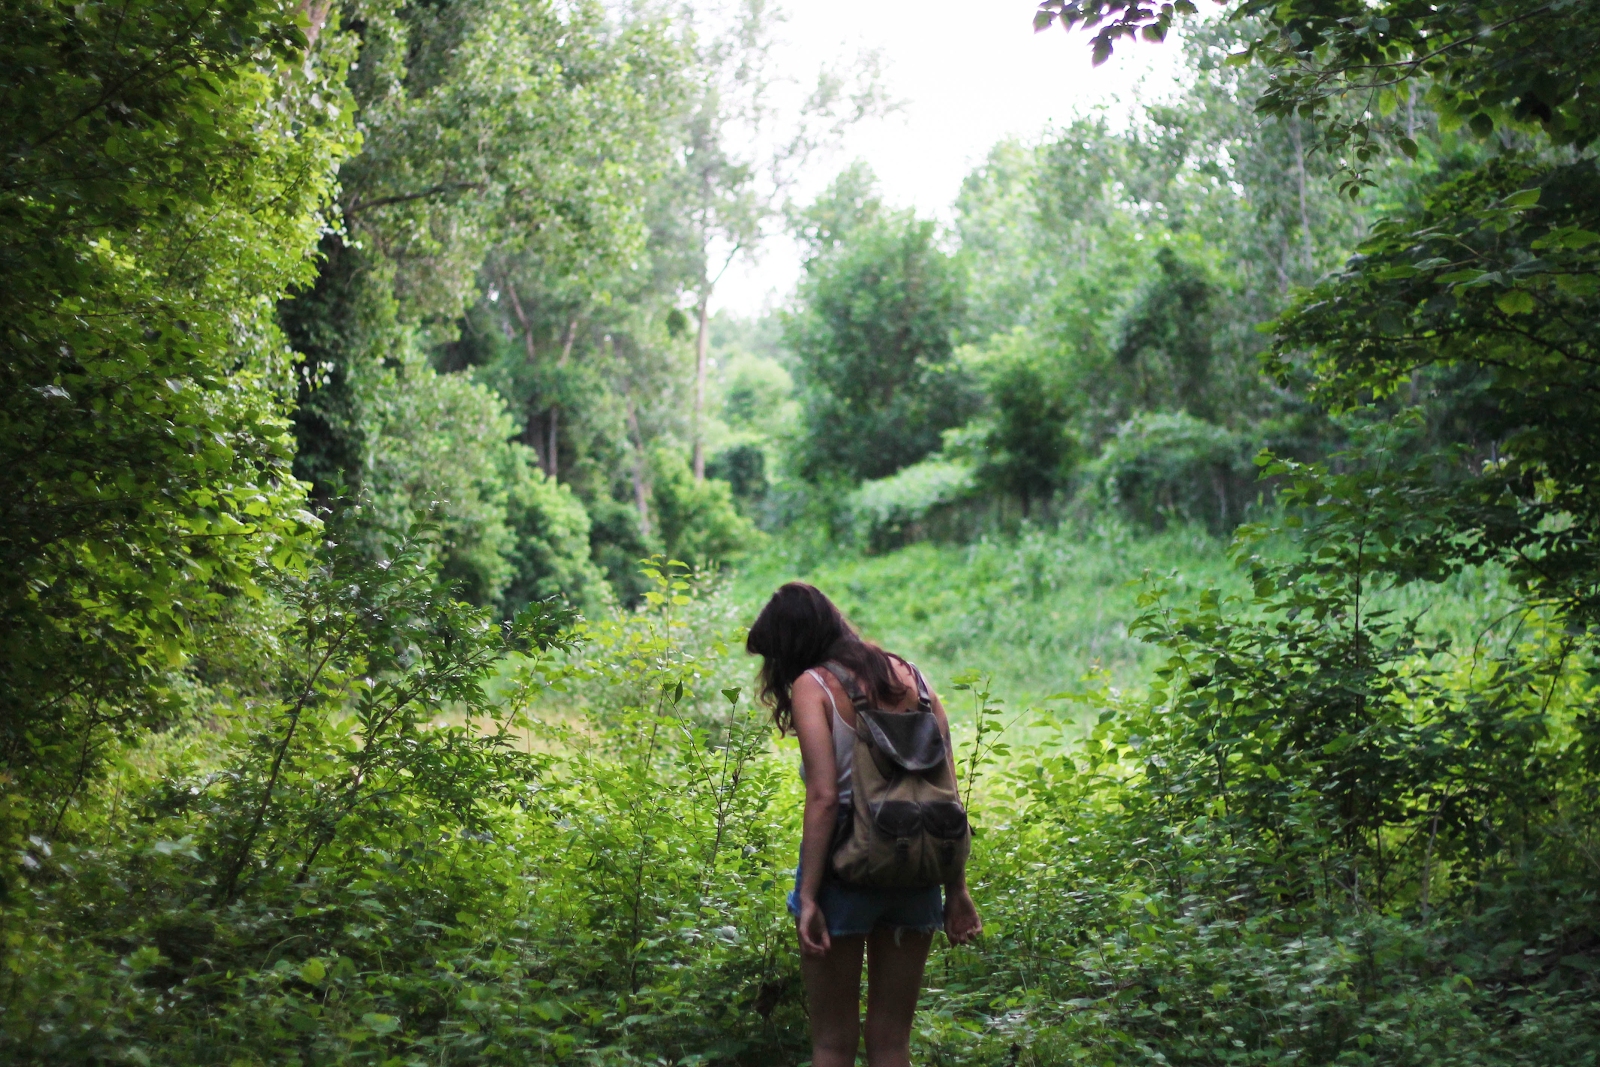 girl with backpack stepping into unkown forest discovering something new.png